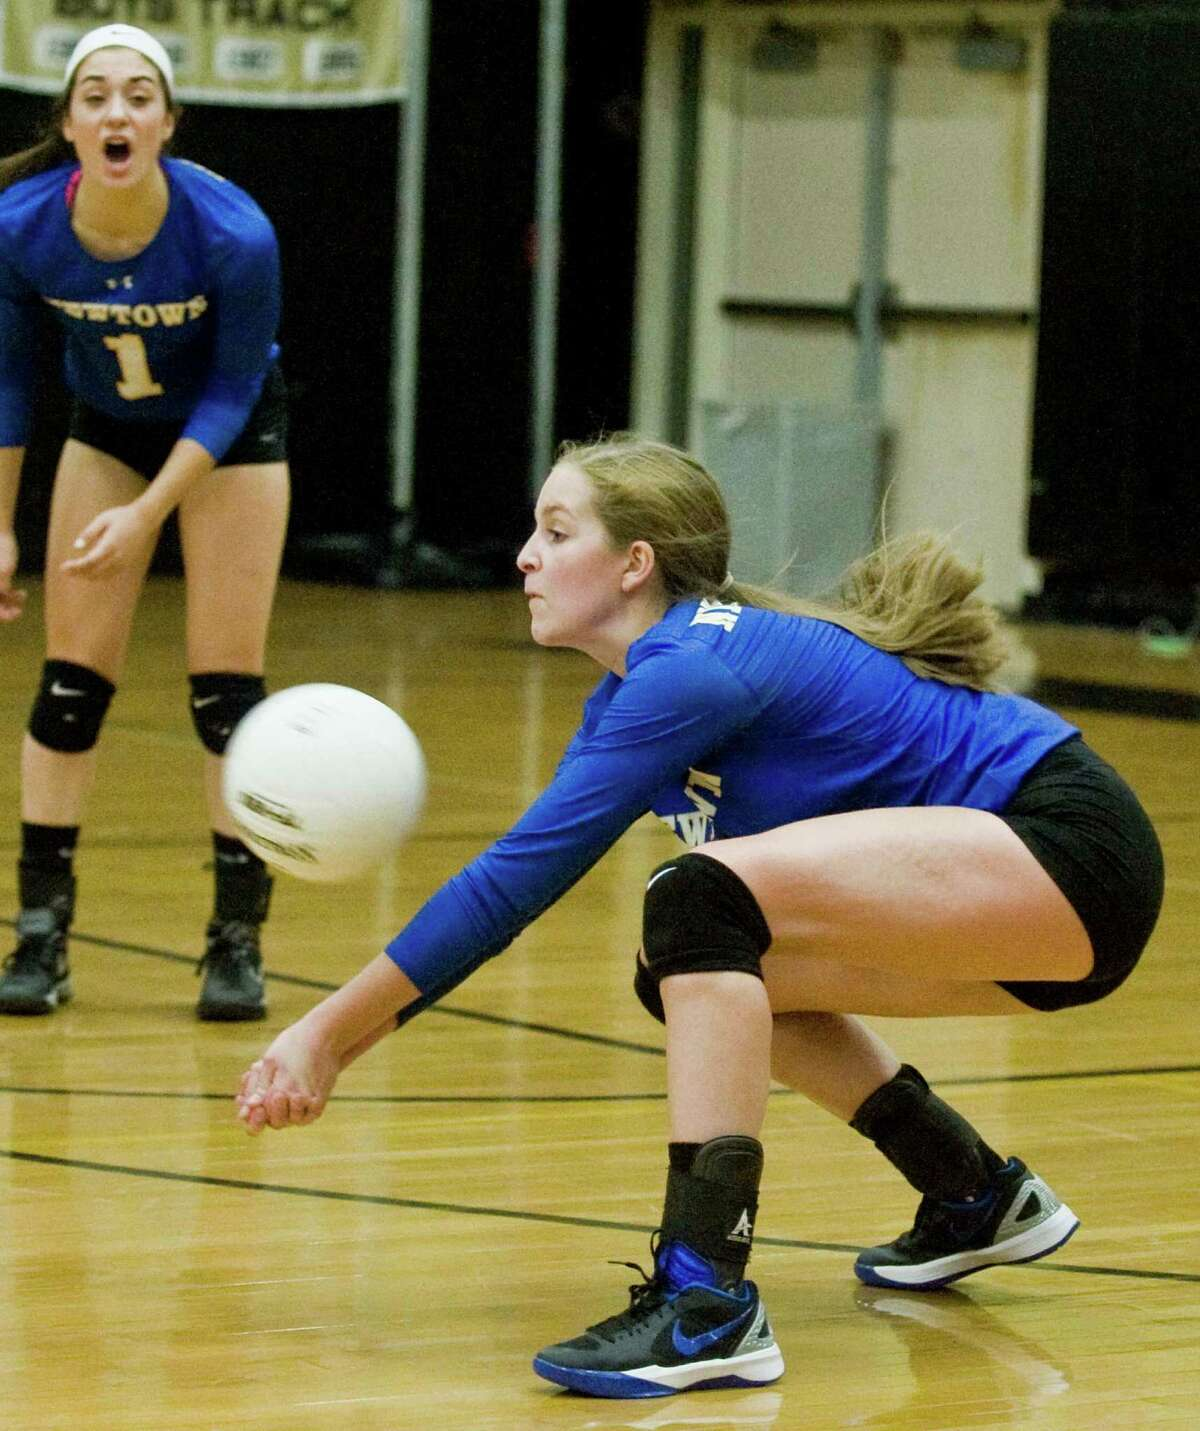 Newtown High School's Zoe Beals returns a serve in a game against Joel Barlow High School, played at Barlow. Monday, Oct. 19, 2015